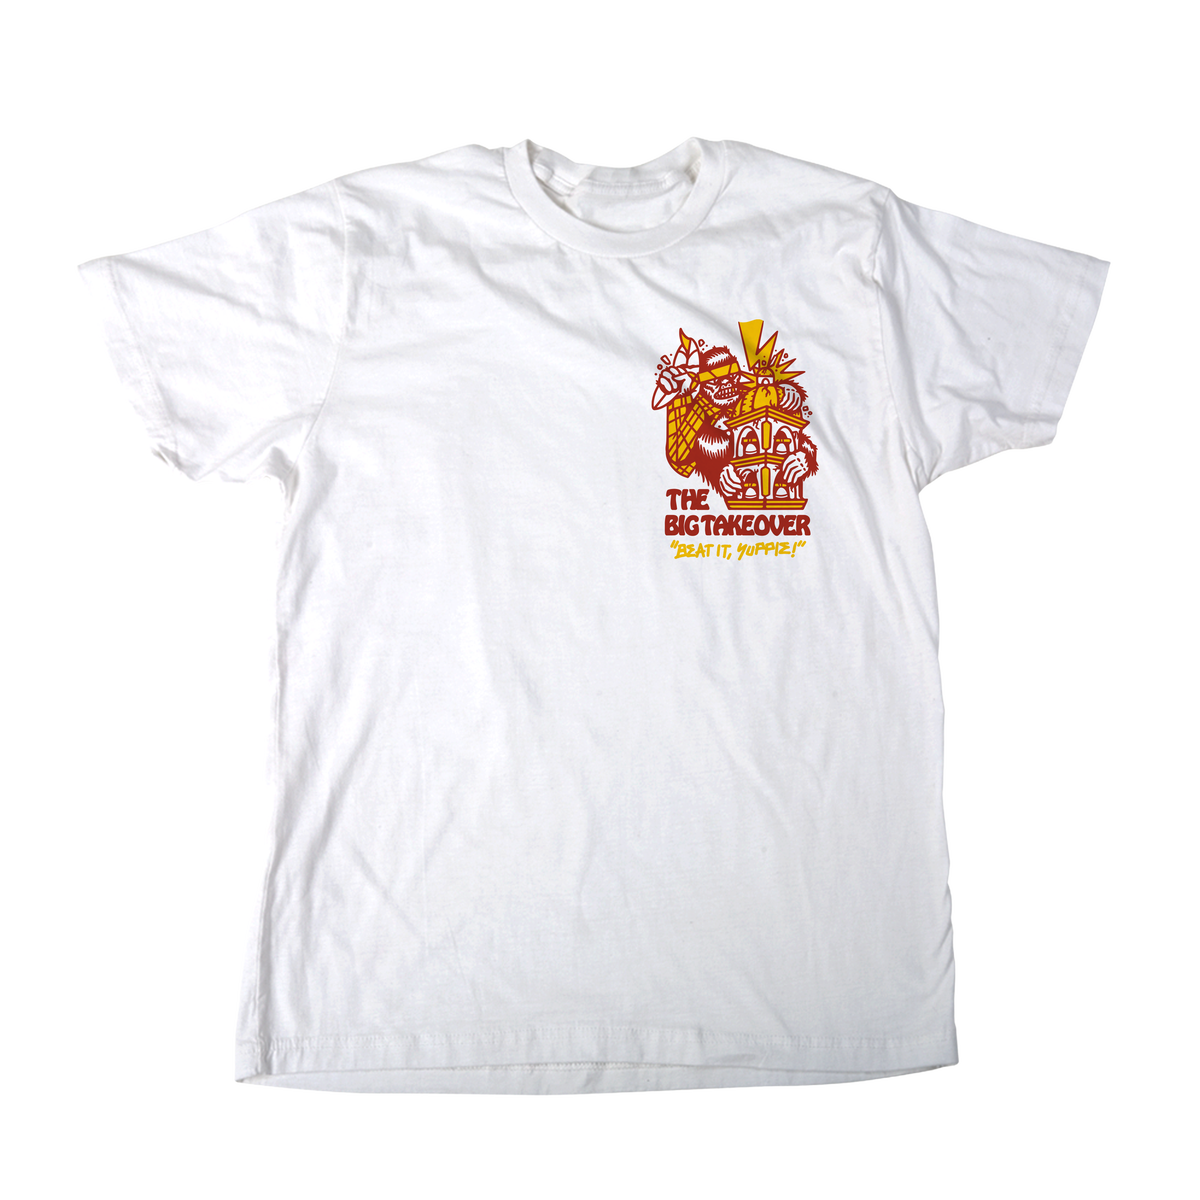 Image of Takeover Tee